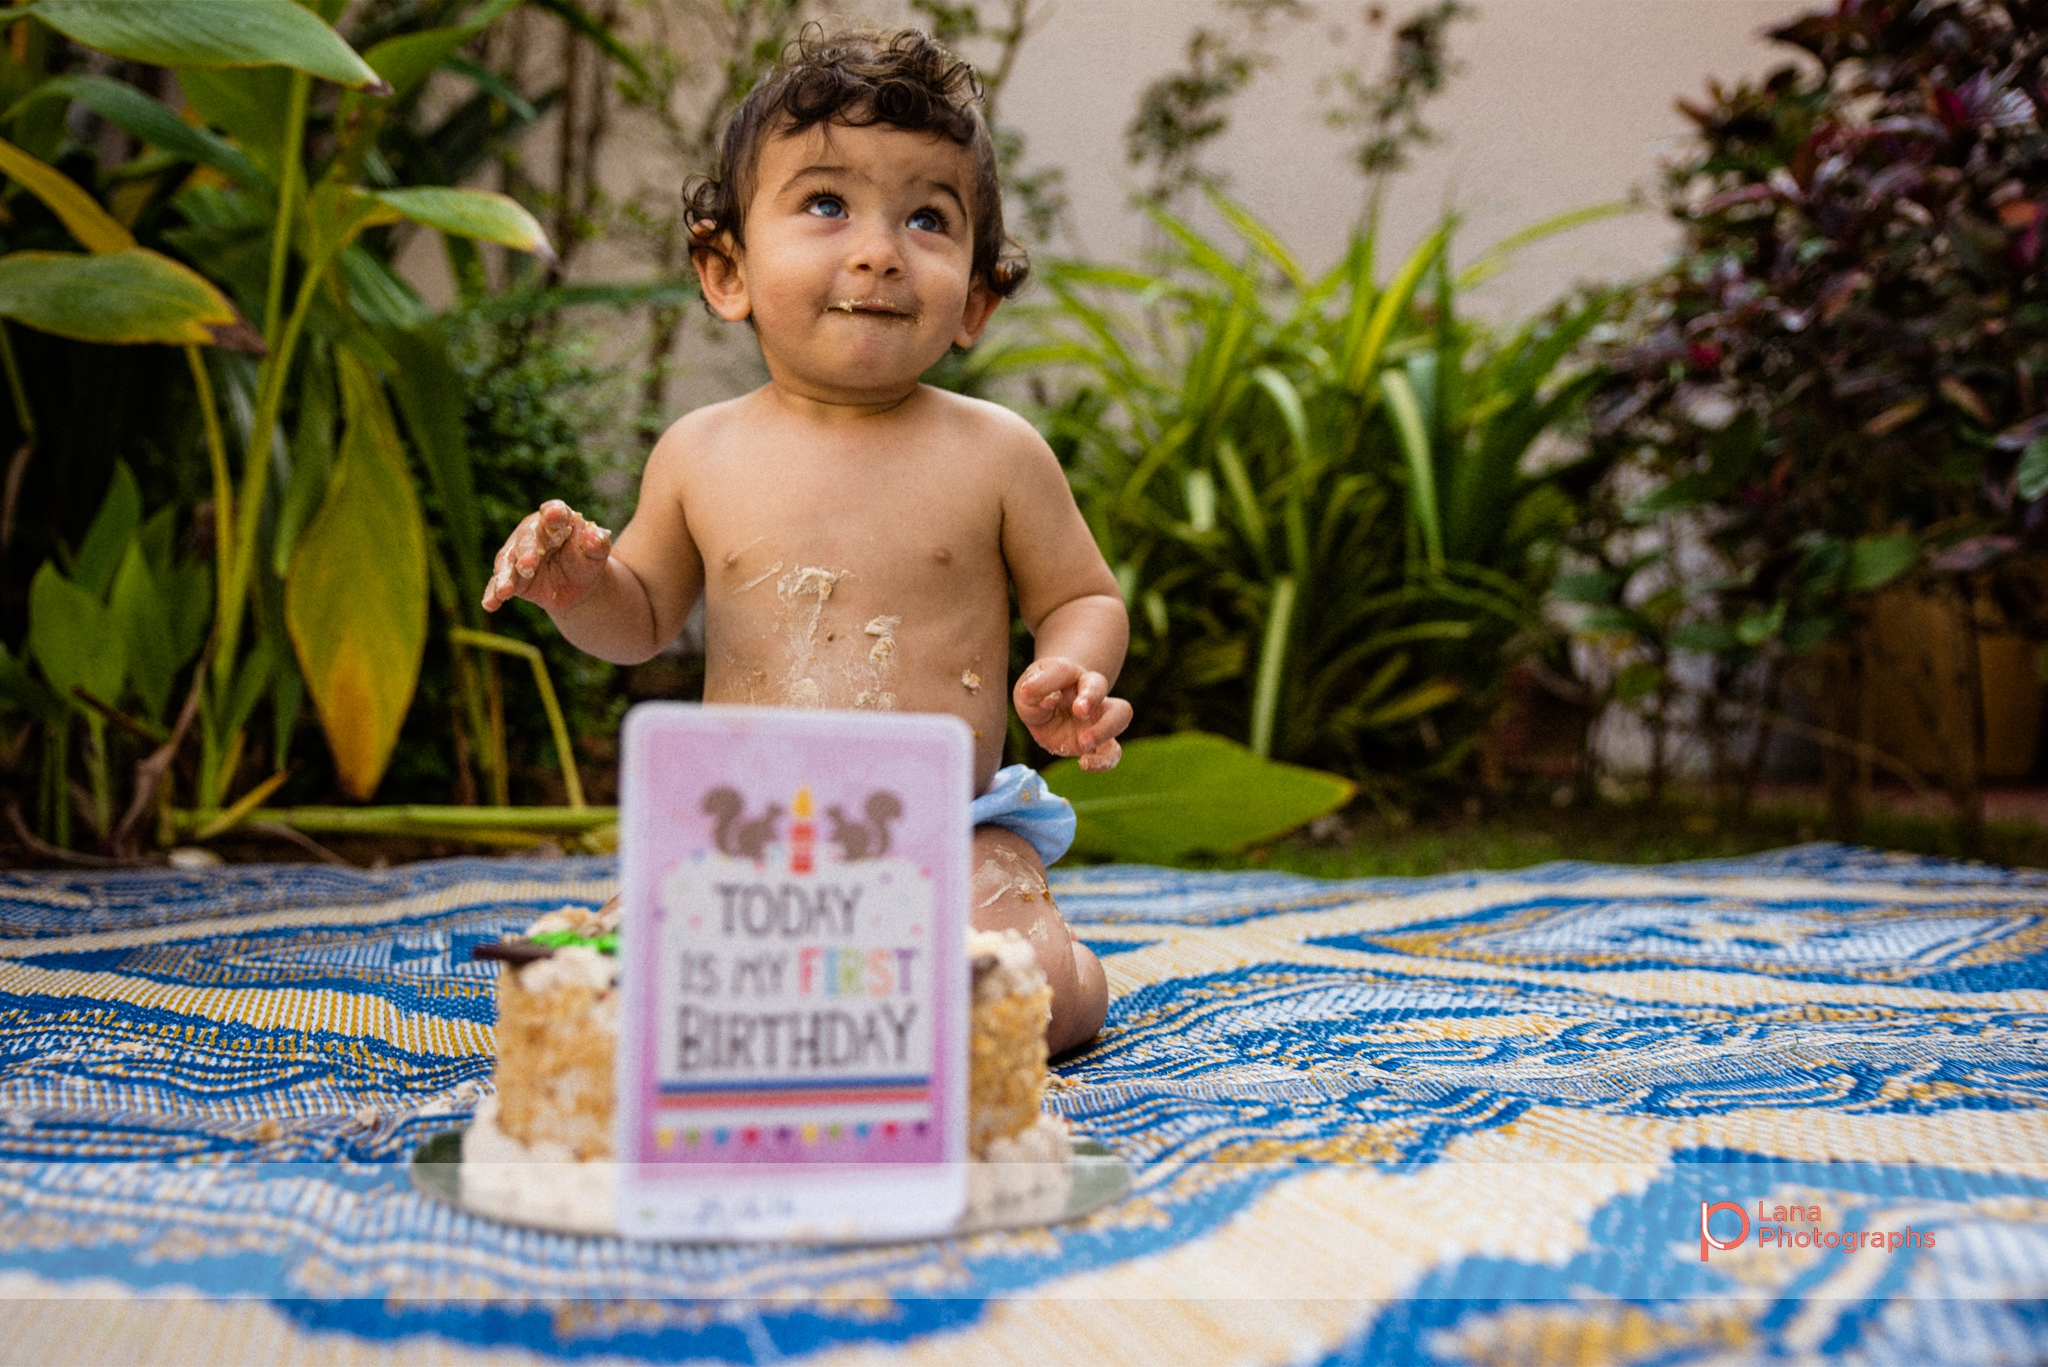 baby boy posing happily with his one year birthday cake outside his home in the garden